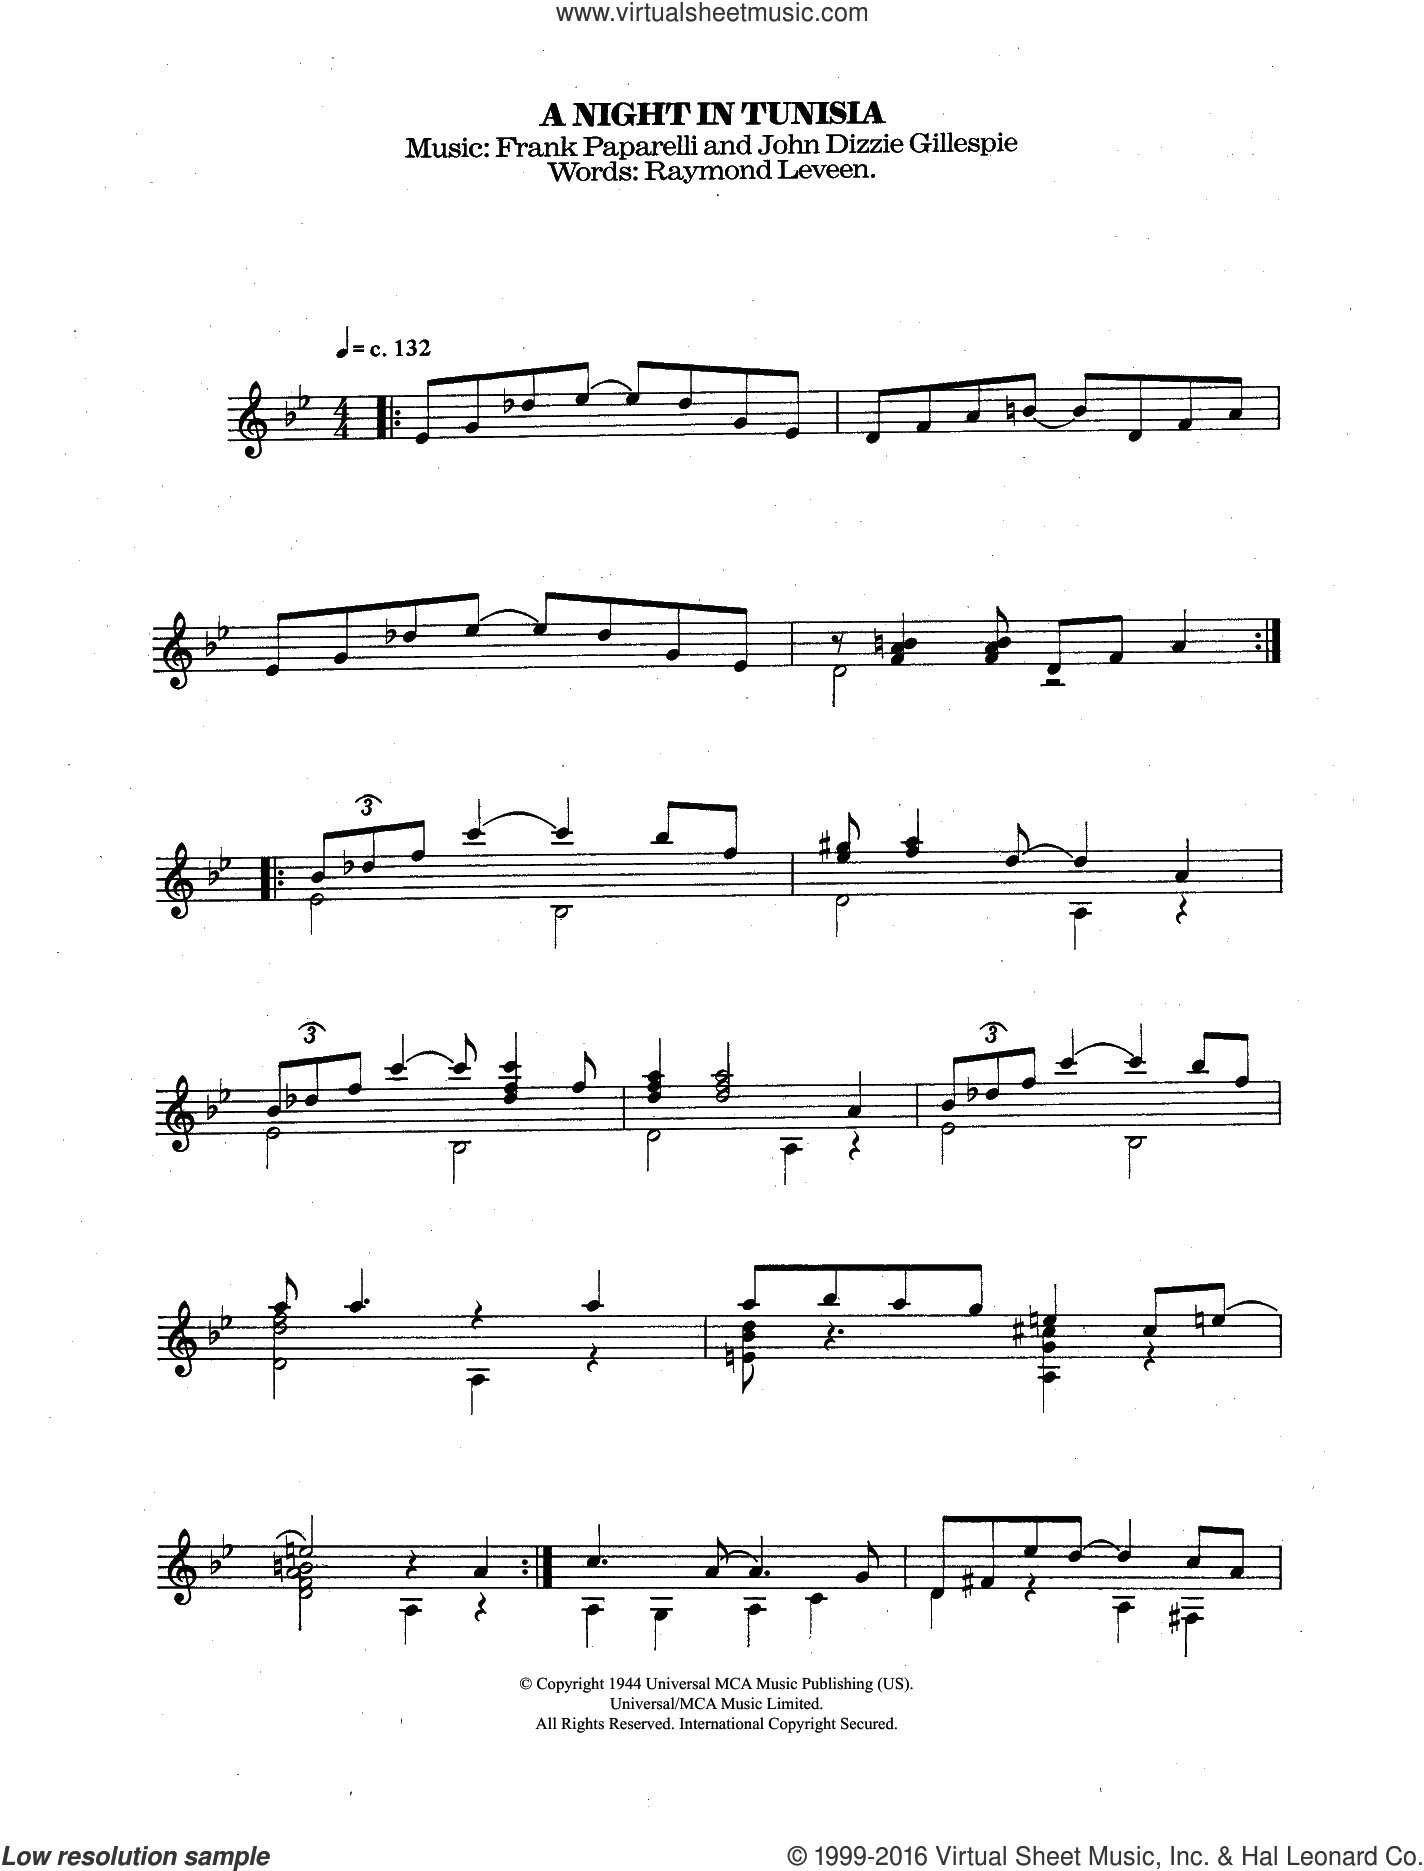 A Night In Tunisia sheet music for guitar solo (chords) by Dizzy Gillespie, Frank Paparelli and Raymond Leveen, classical score, easy guitar (chords)